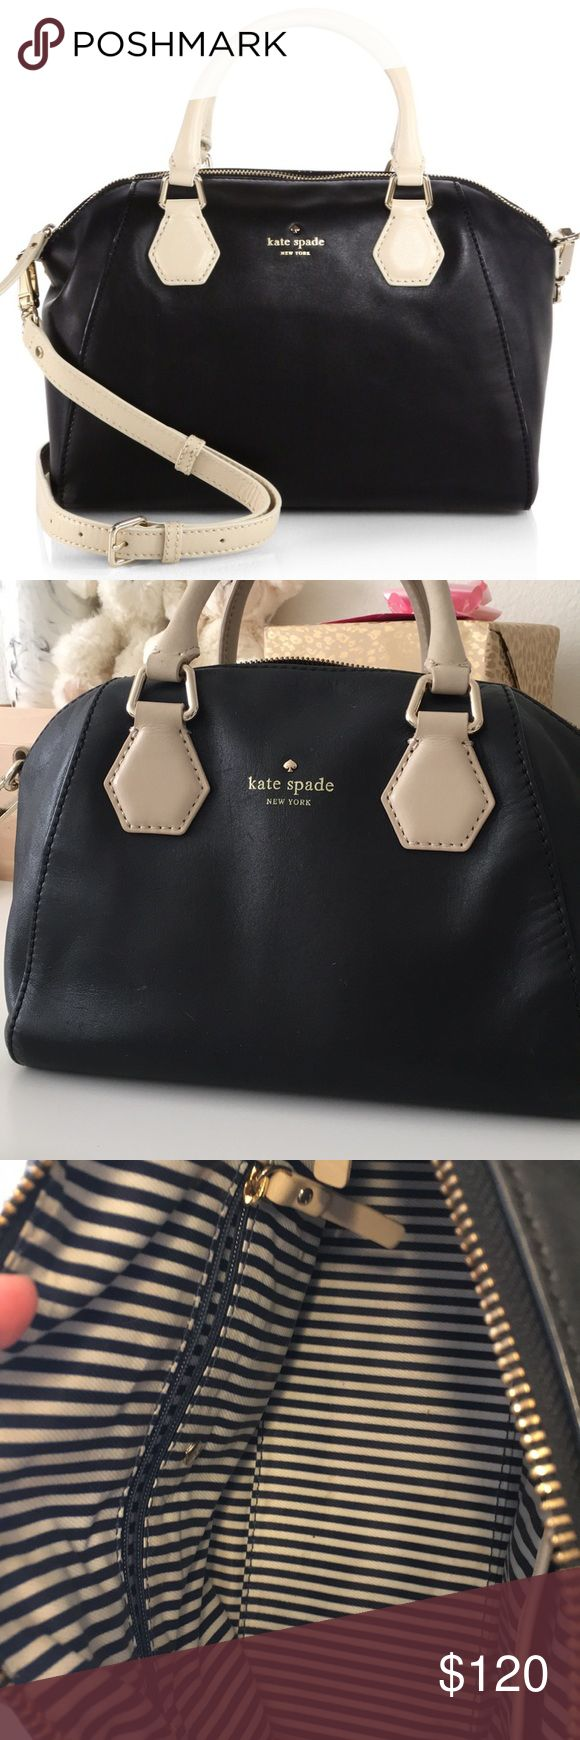 Kate Spade Black Catherine Street Pippa In perfect preloved condition. No scratches or stains. Inside is very clean!!! Comes with strap, no signs of wear on handles.   🌟 Reasonable offers encouraged 🌟 🚫 Sorry, no trades. kate spade Bags